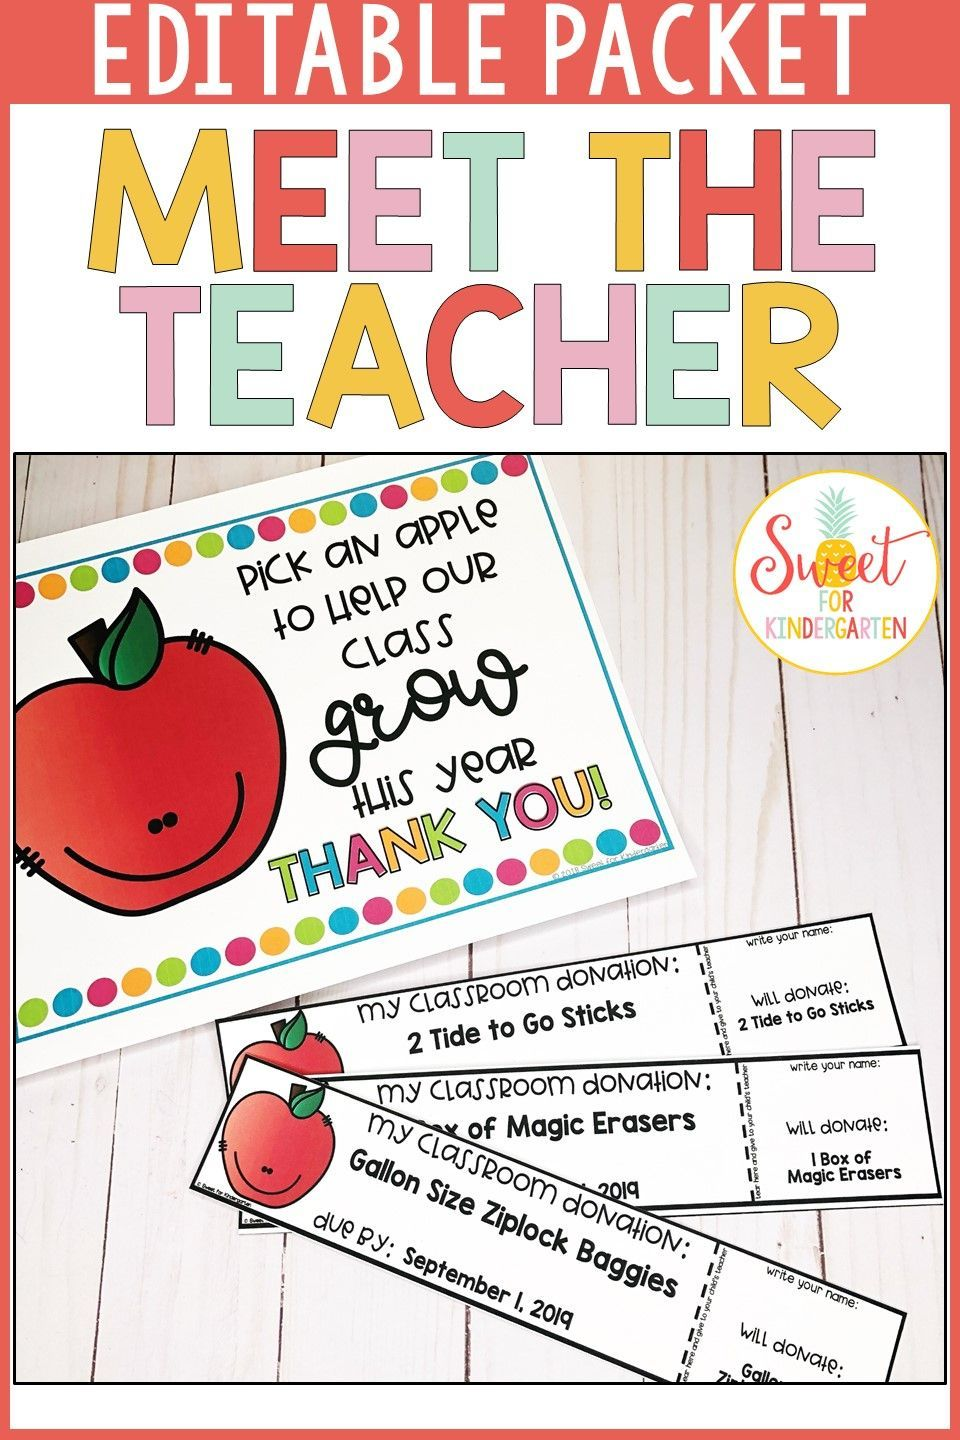 Meet the Teacher Editable Packet Grab everything you need for Meet the Teacher in one editable packet! It includes step by step stations signs, about me template, wish list display, scavenger hunt activity, treat ideas, printable forms, teacher business card, and more! Make a great first impression with your new student's parents!